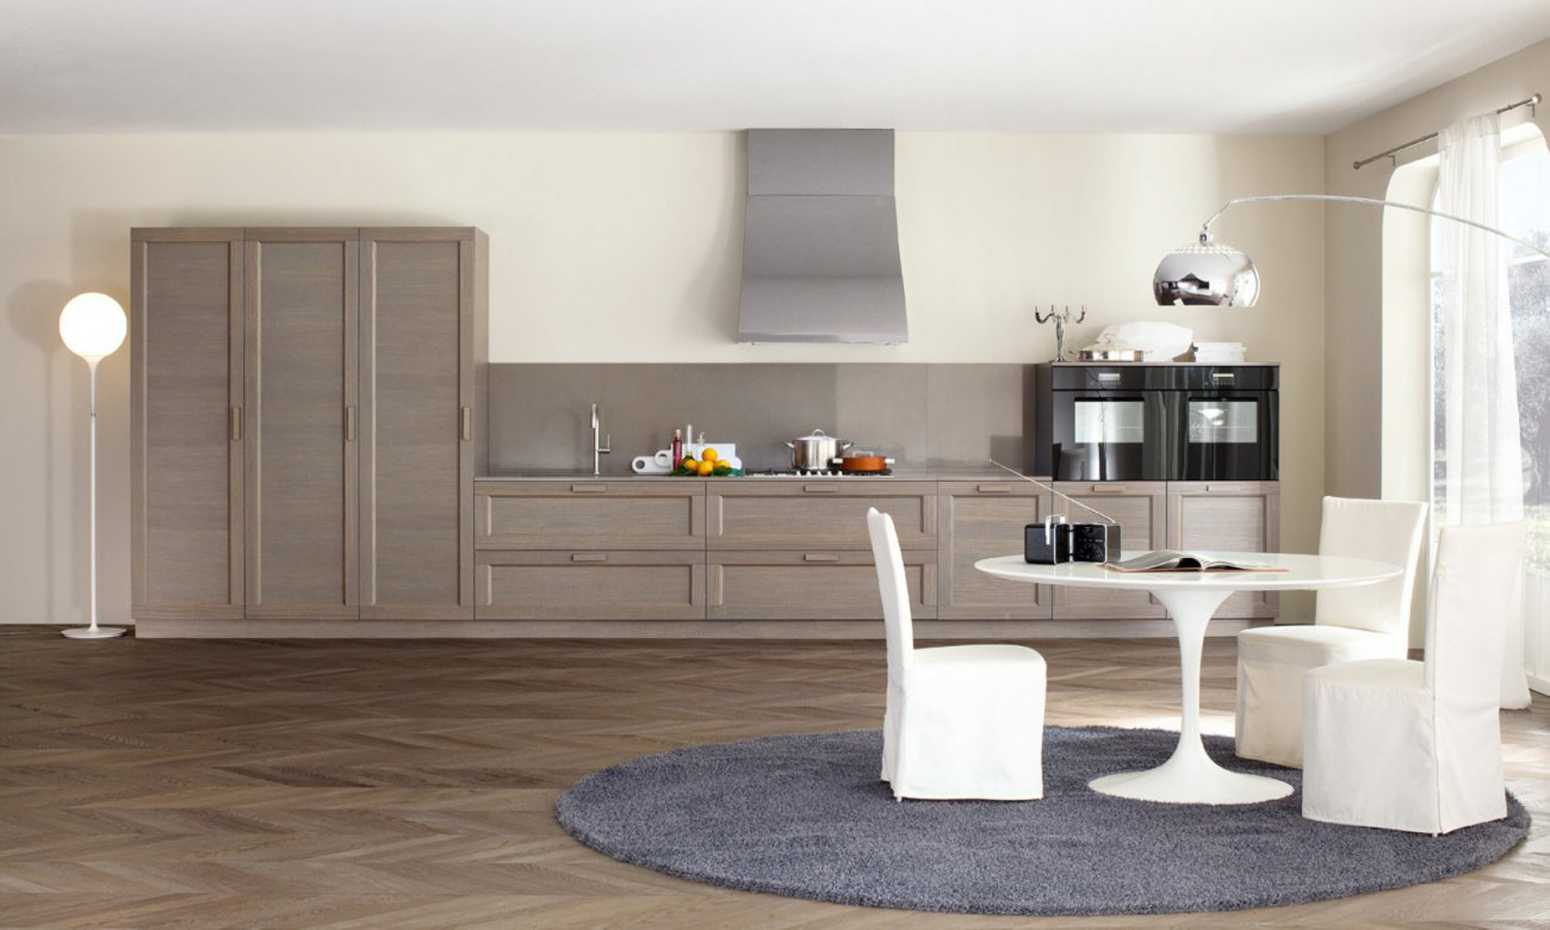 Glamour by Doimo Cucine product image 4